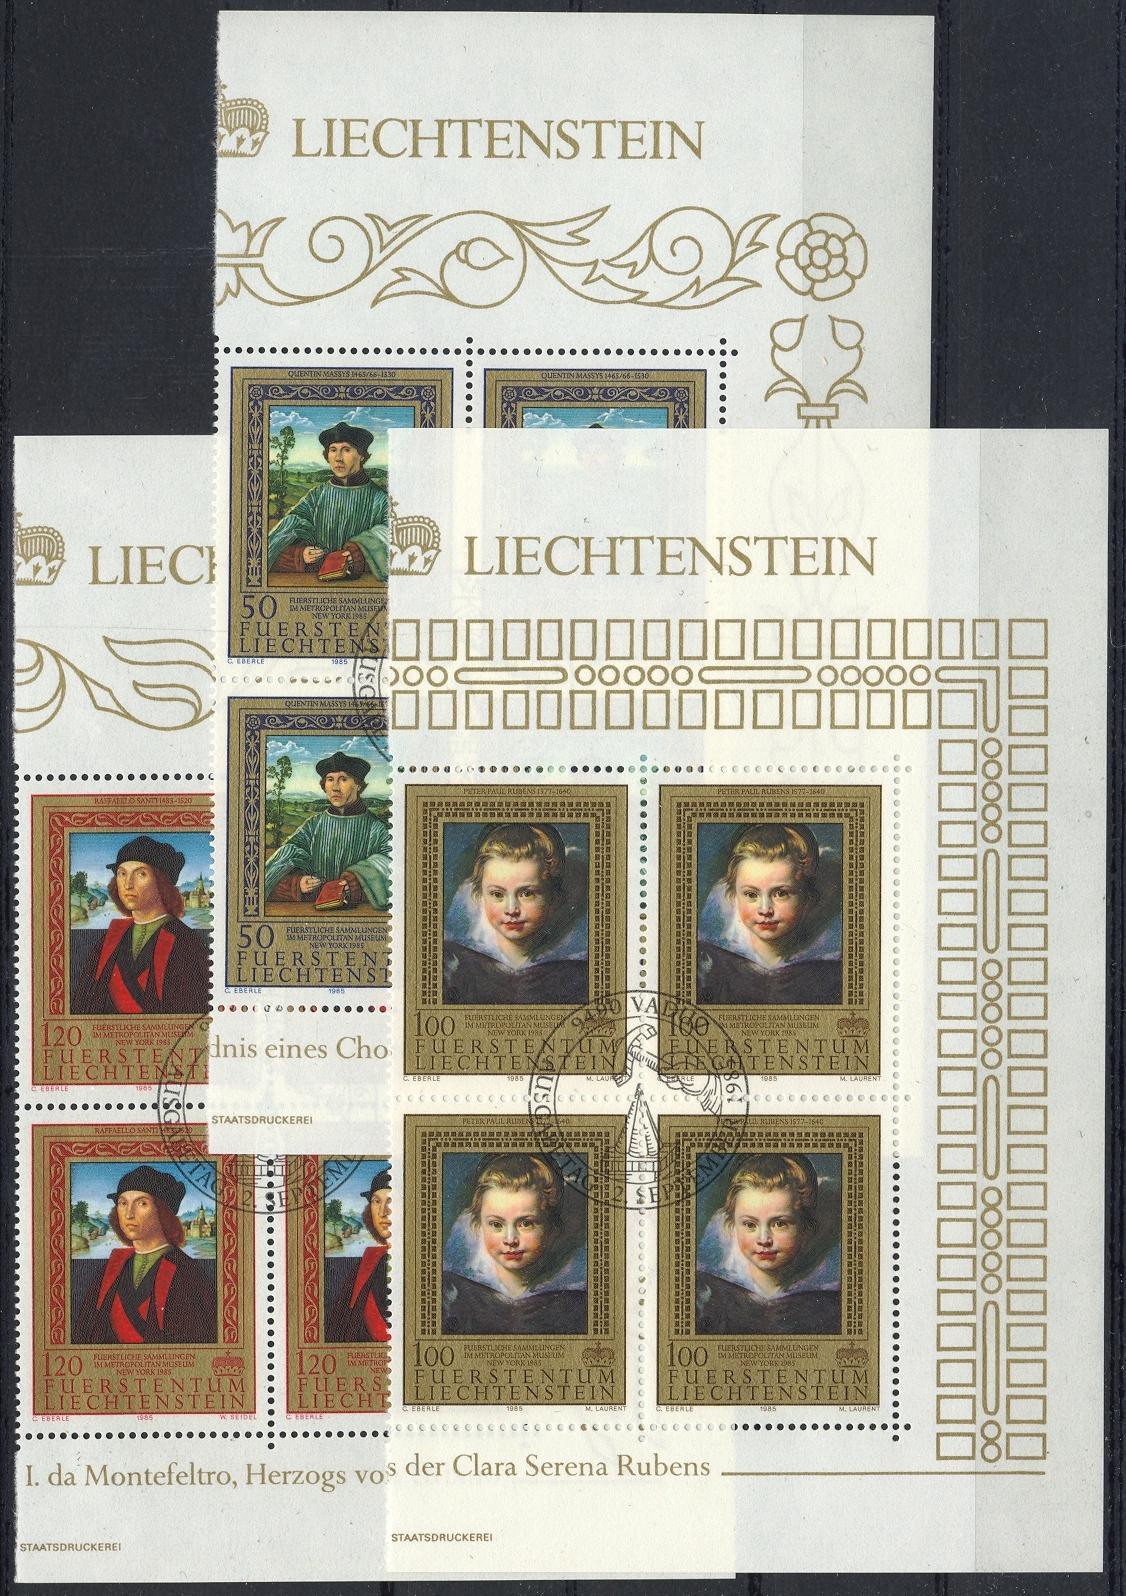 Stamps with Rubens, Art from Liechtenstein (image for product #032114)